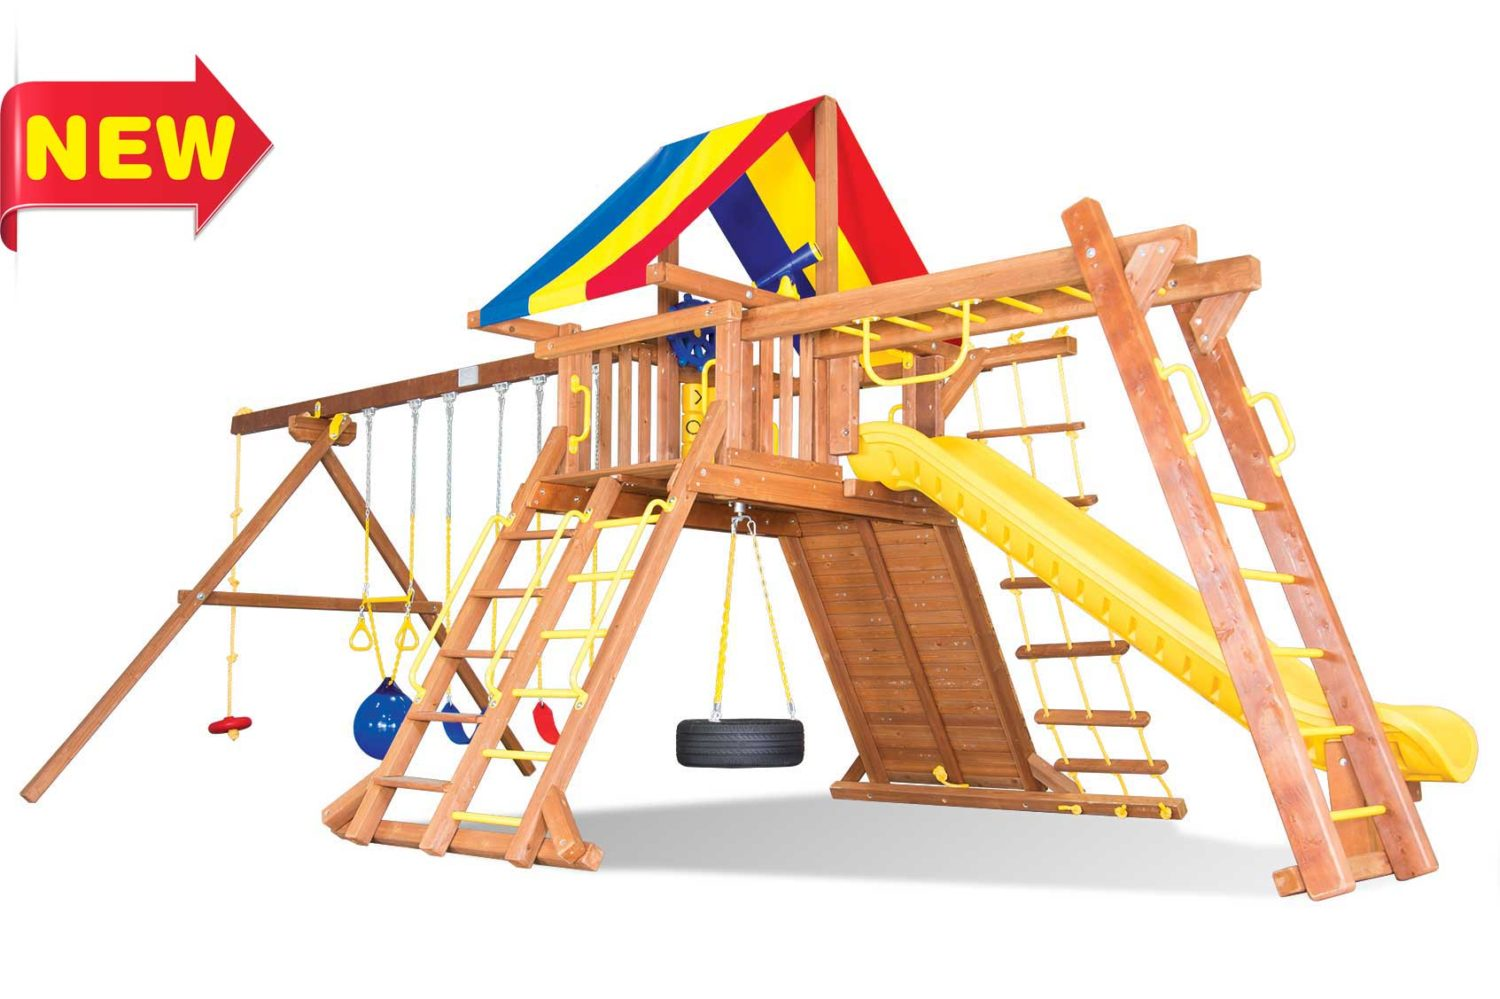 Circus Super Turbo Castle Pkg III Wooden Swing Sets